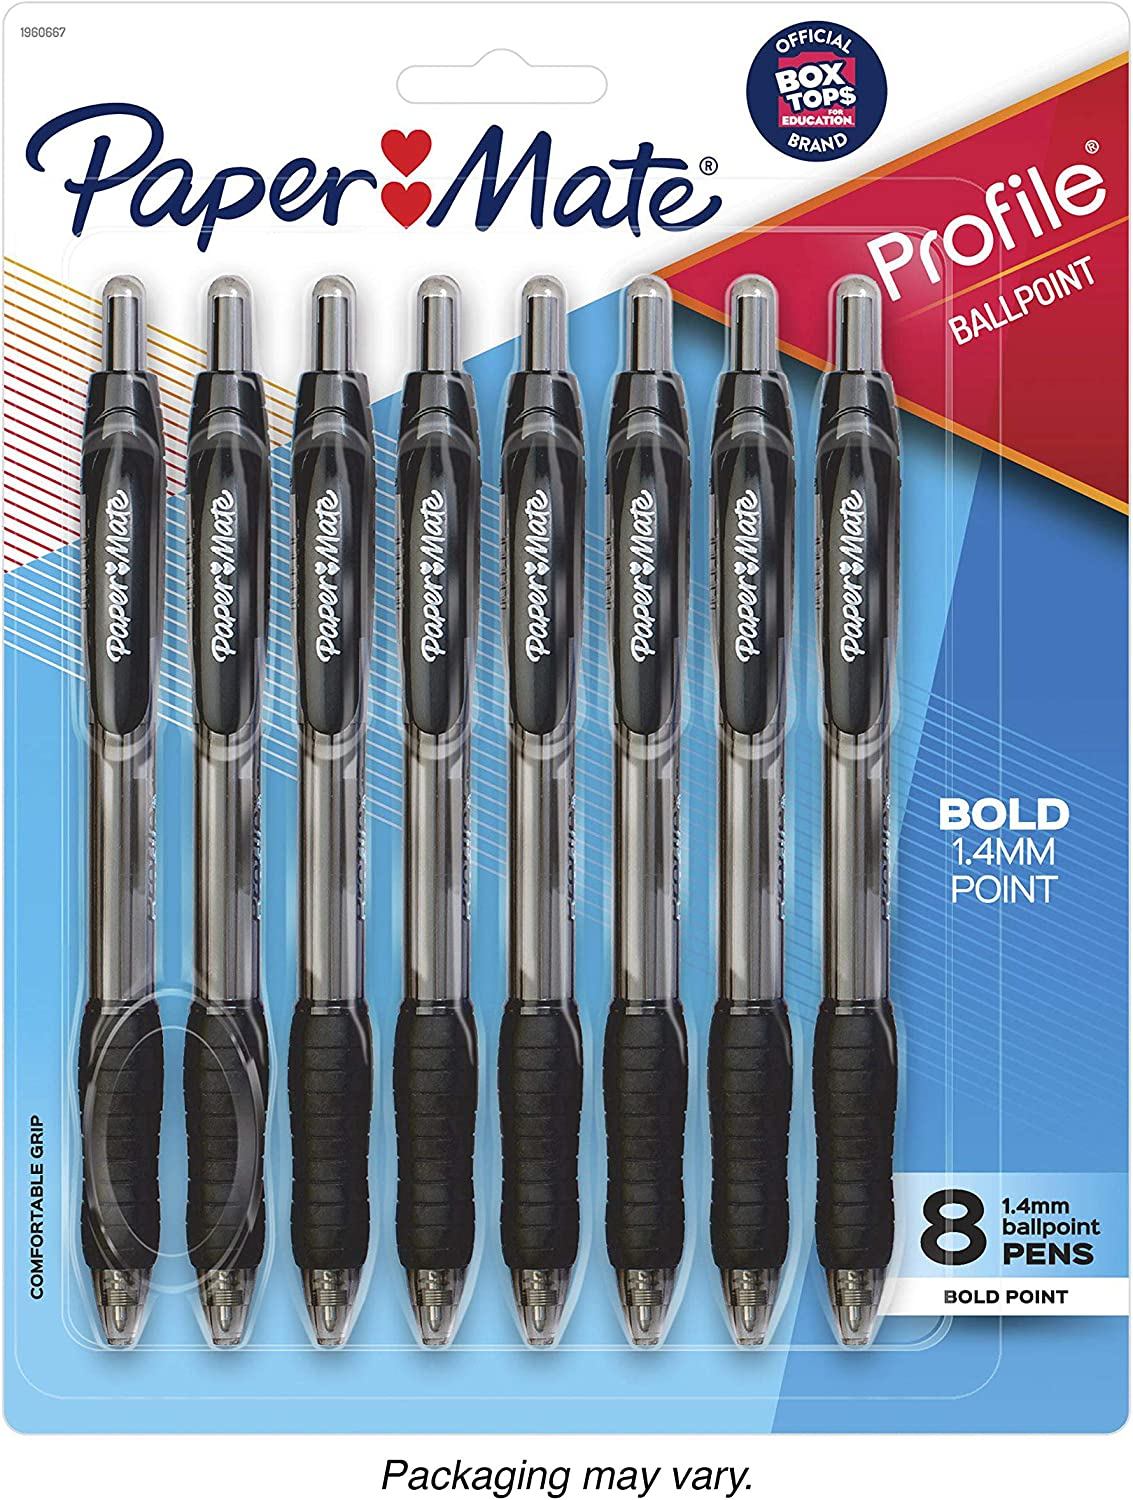 Paper Mate Profile Ink Pen Black Ball Point Pen Bold Point New  2 Pens #v